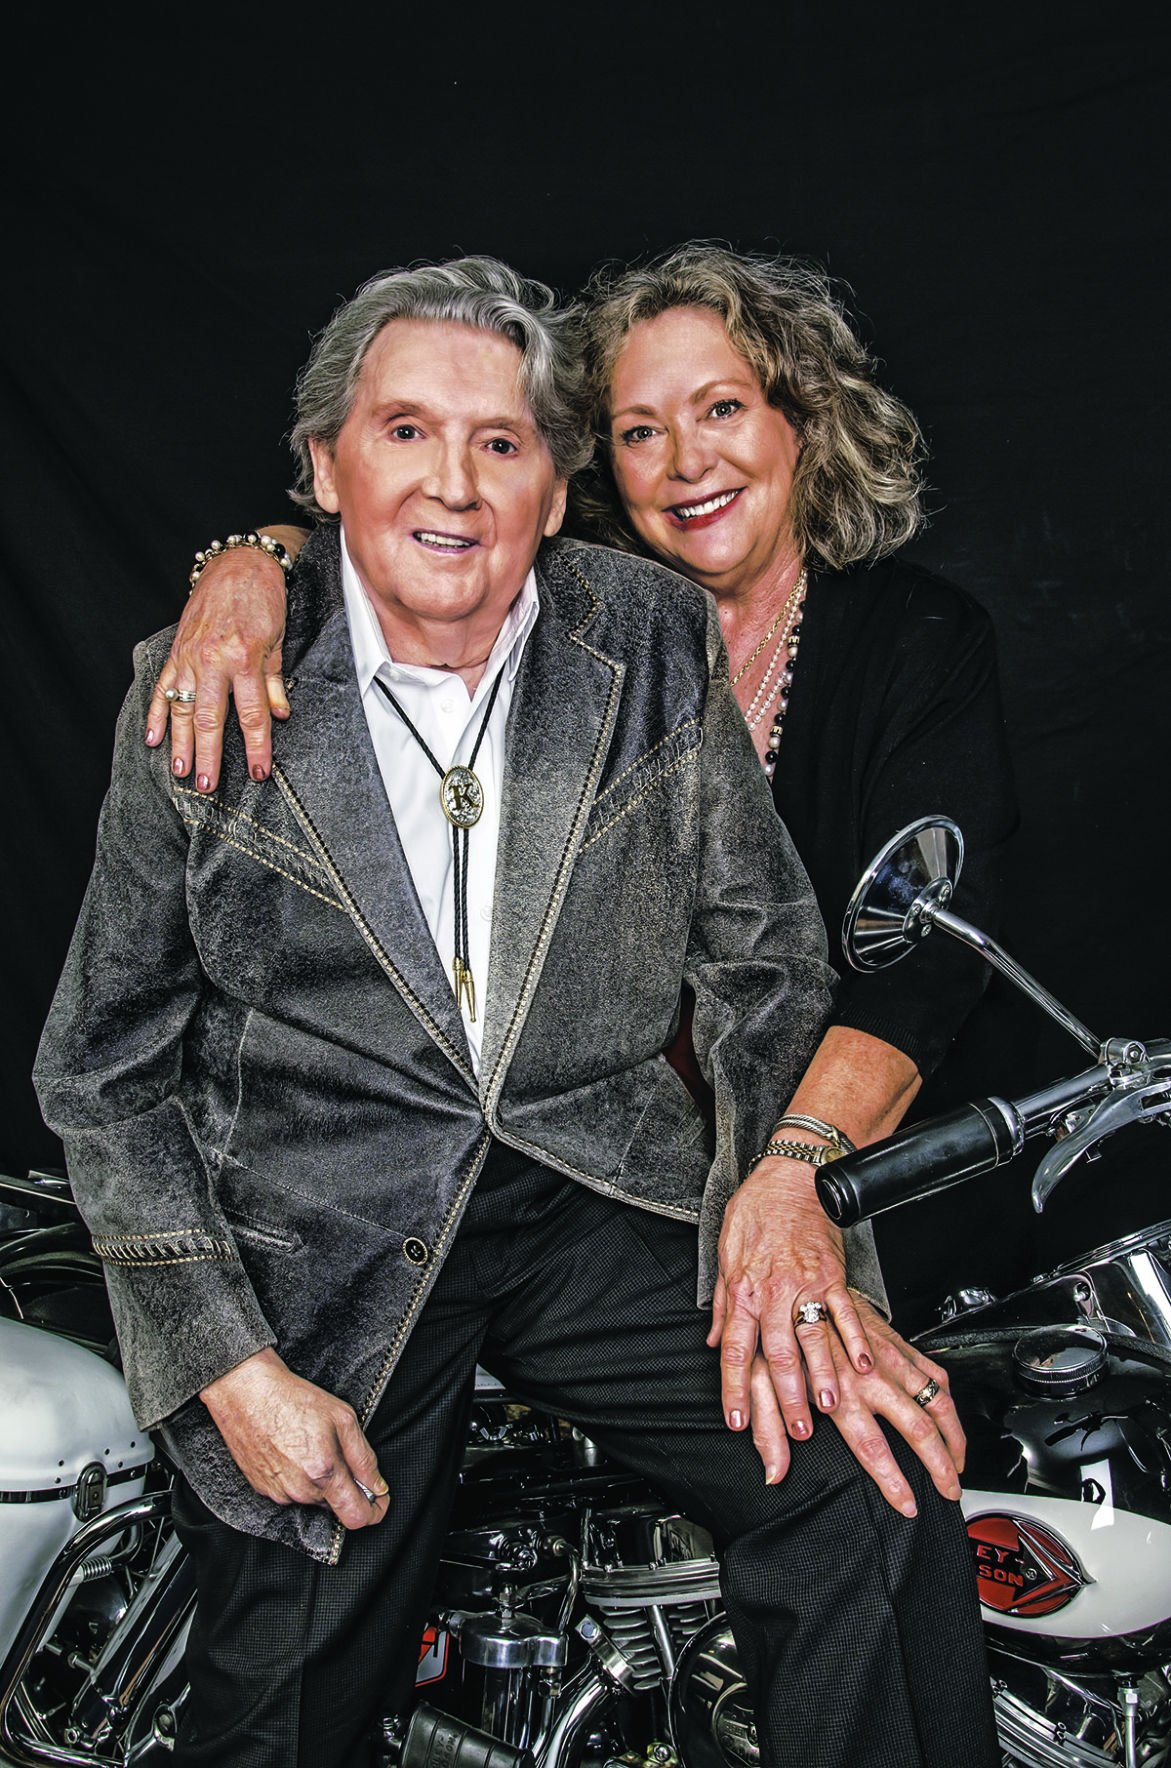 In Rick Braggs New Biography 79 Year Old Jerry Lee Lewis Looks Back On A Life Spent Raising